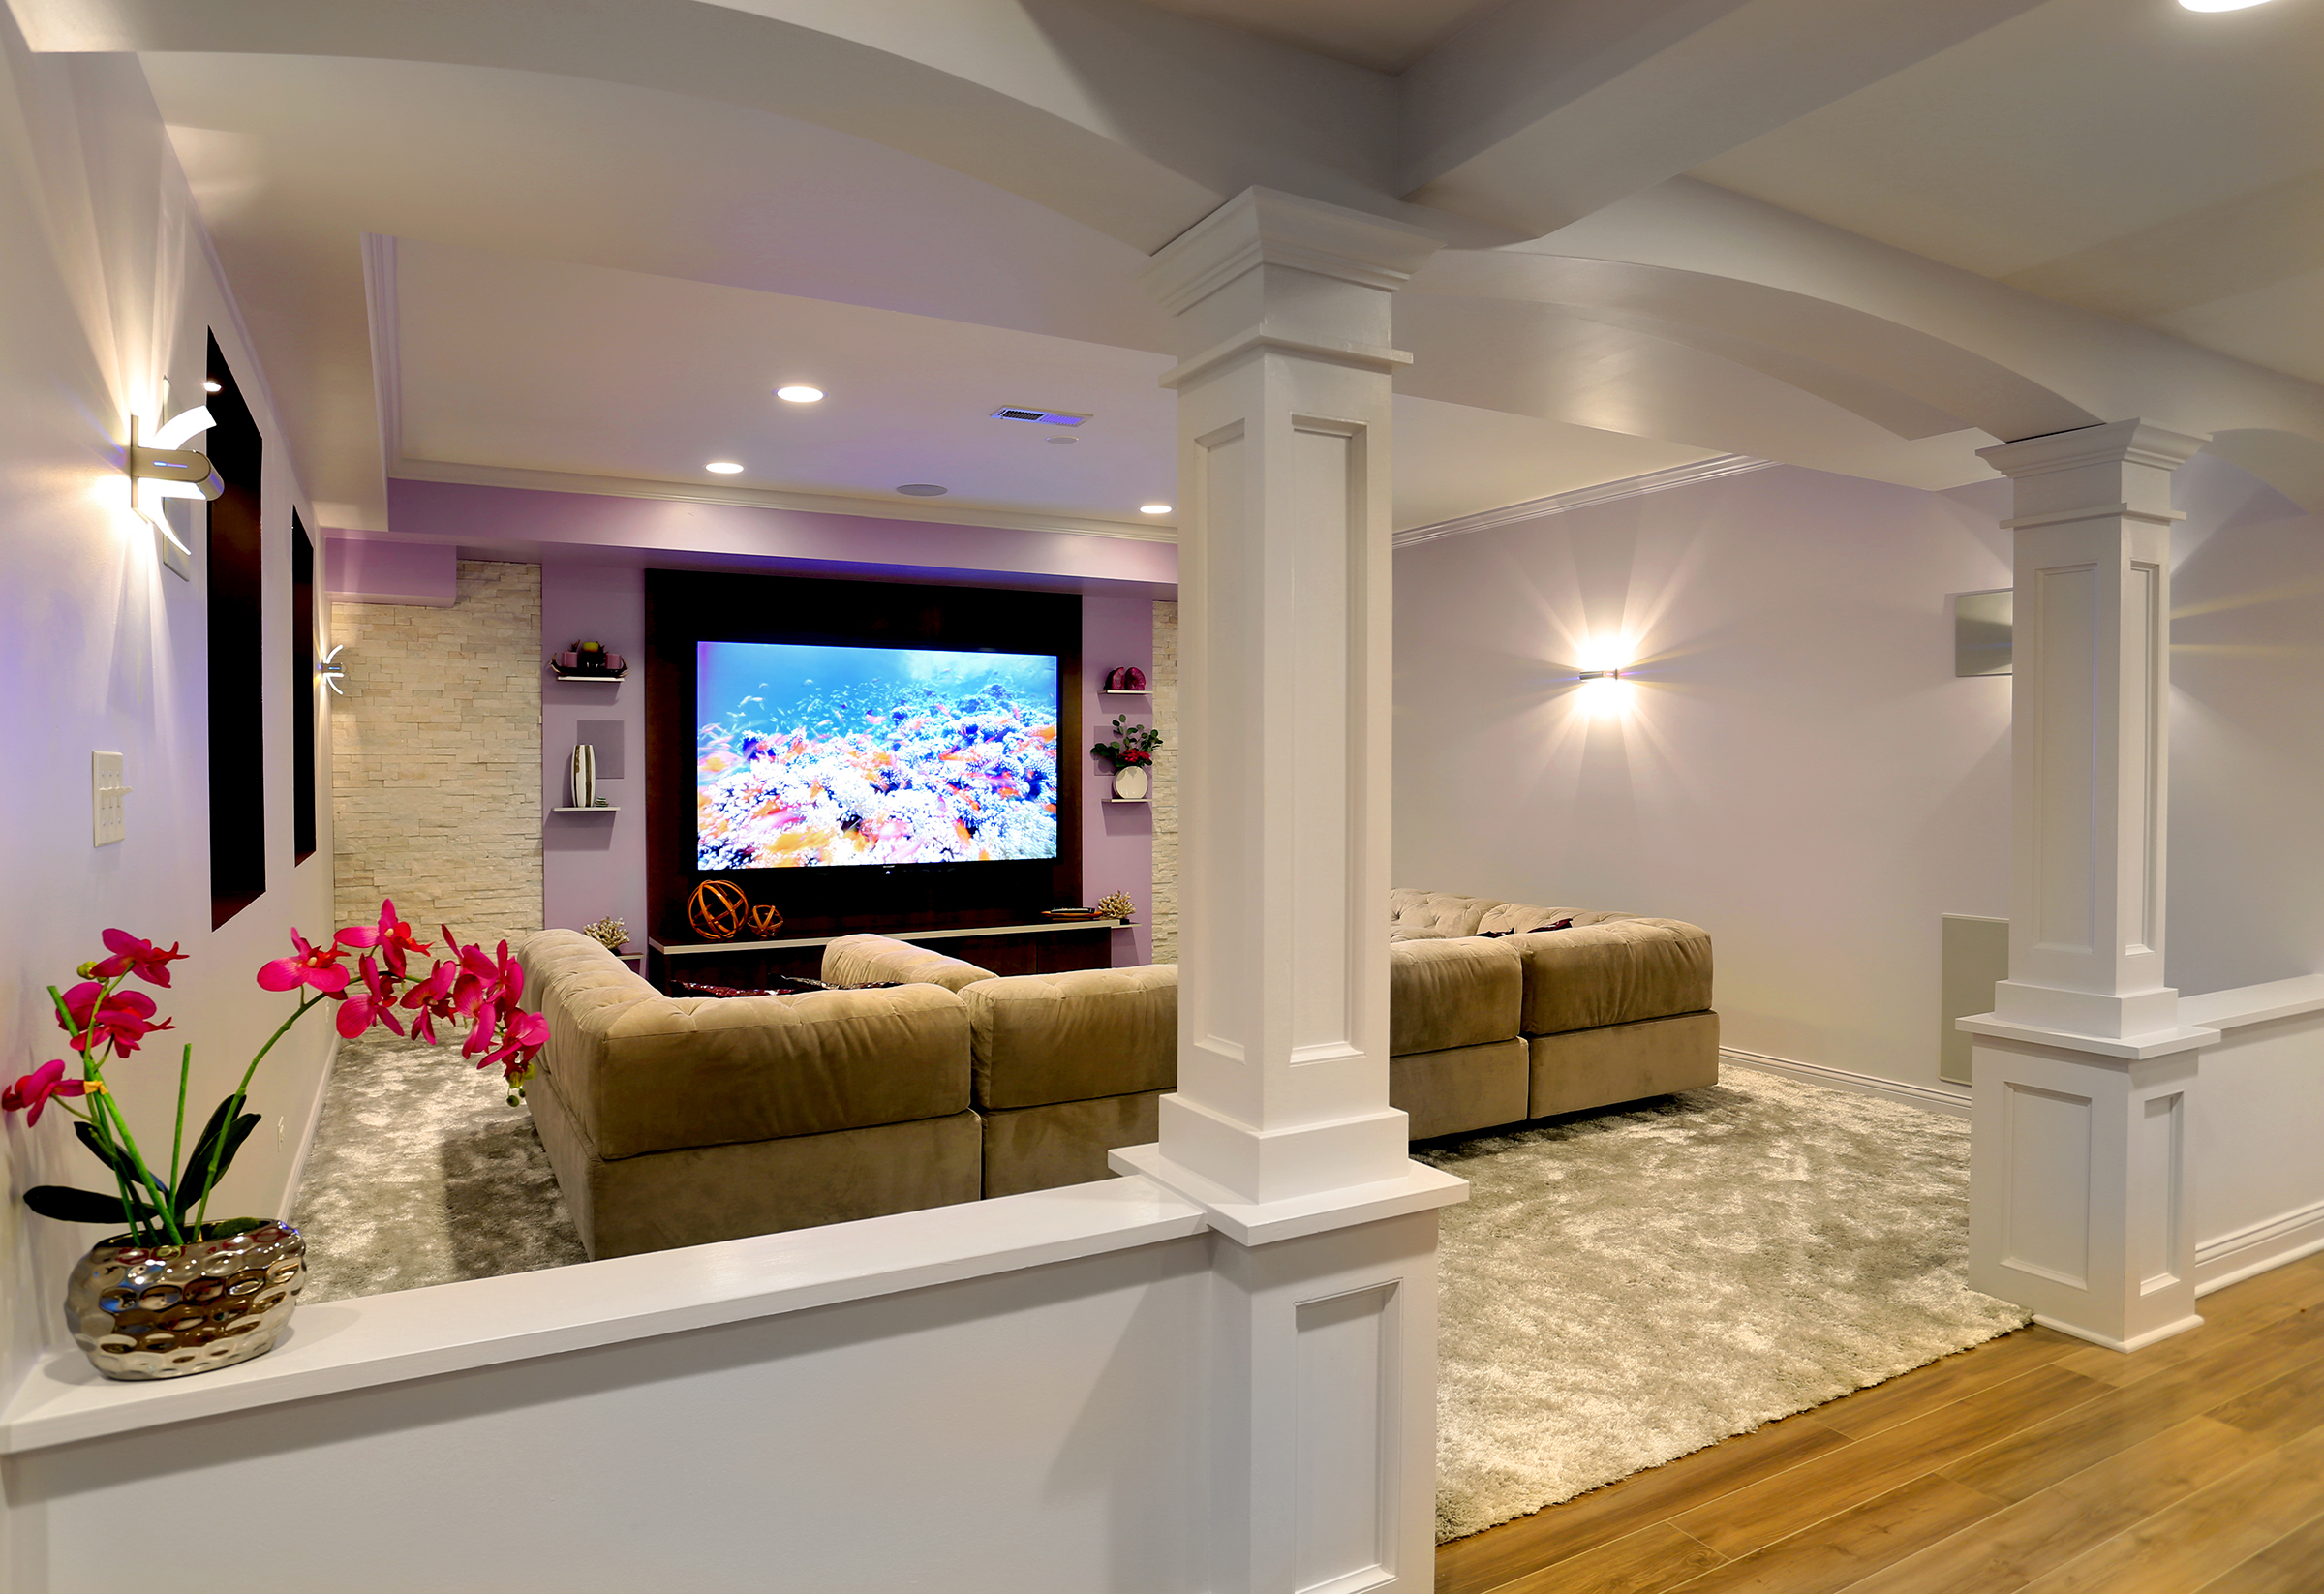 Column Consultation Incorporating Columns Into Your Design Normandy Remodeling